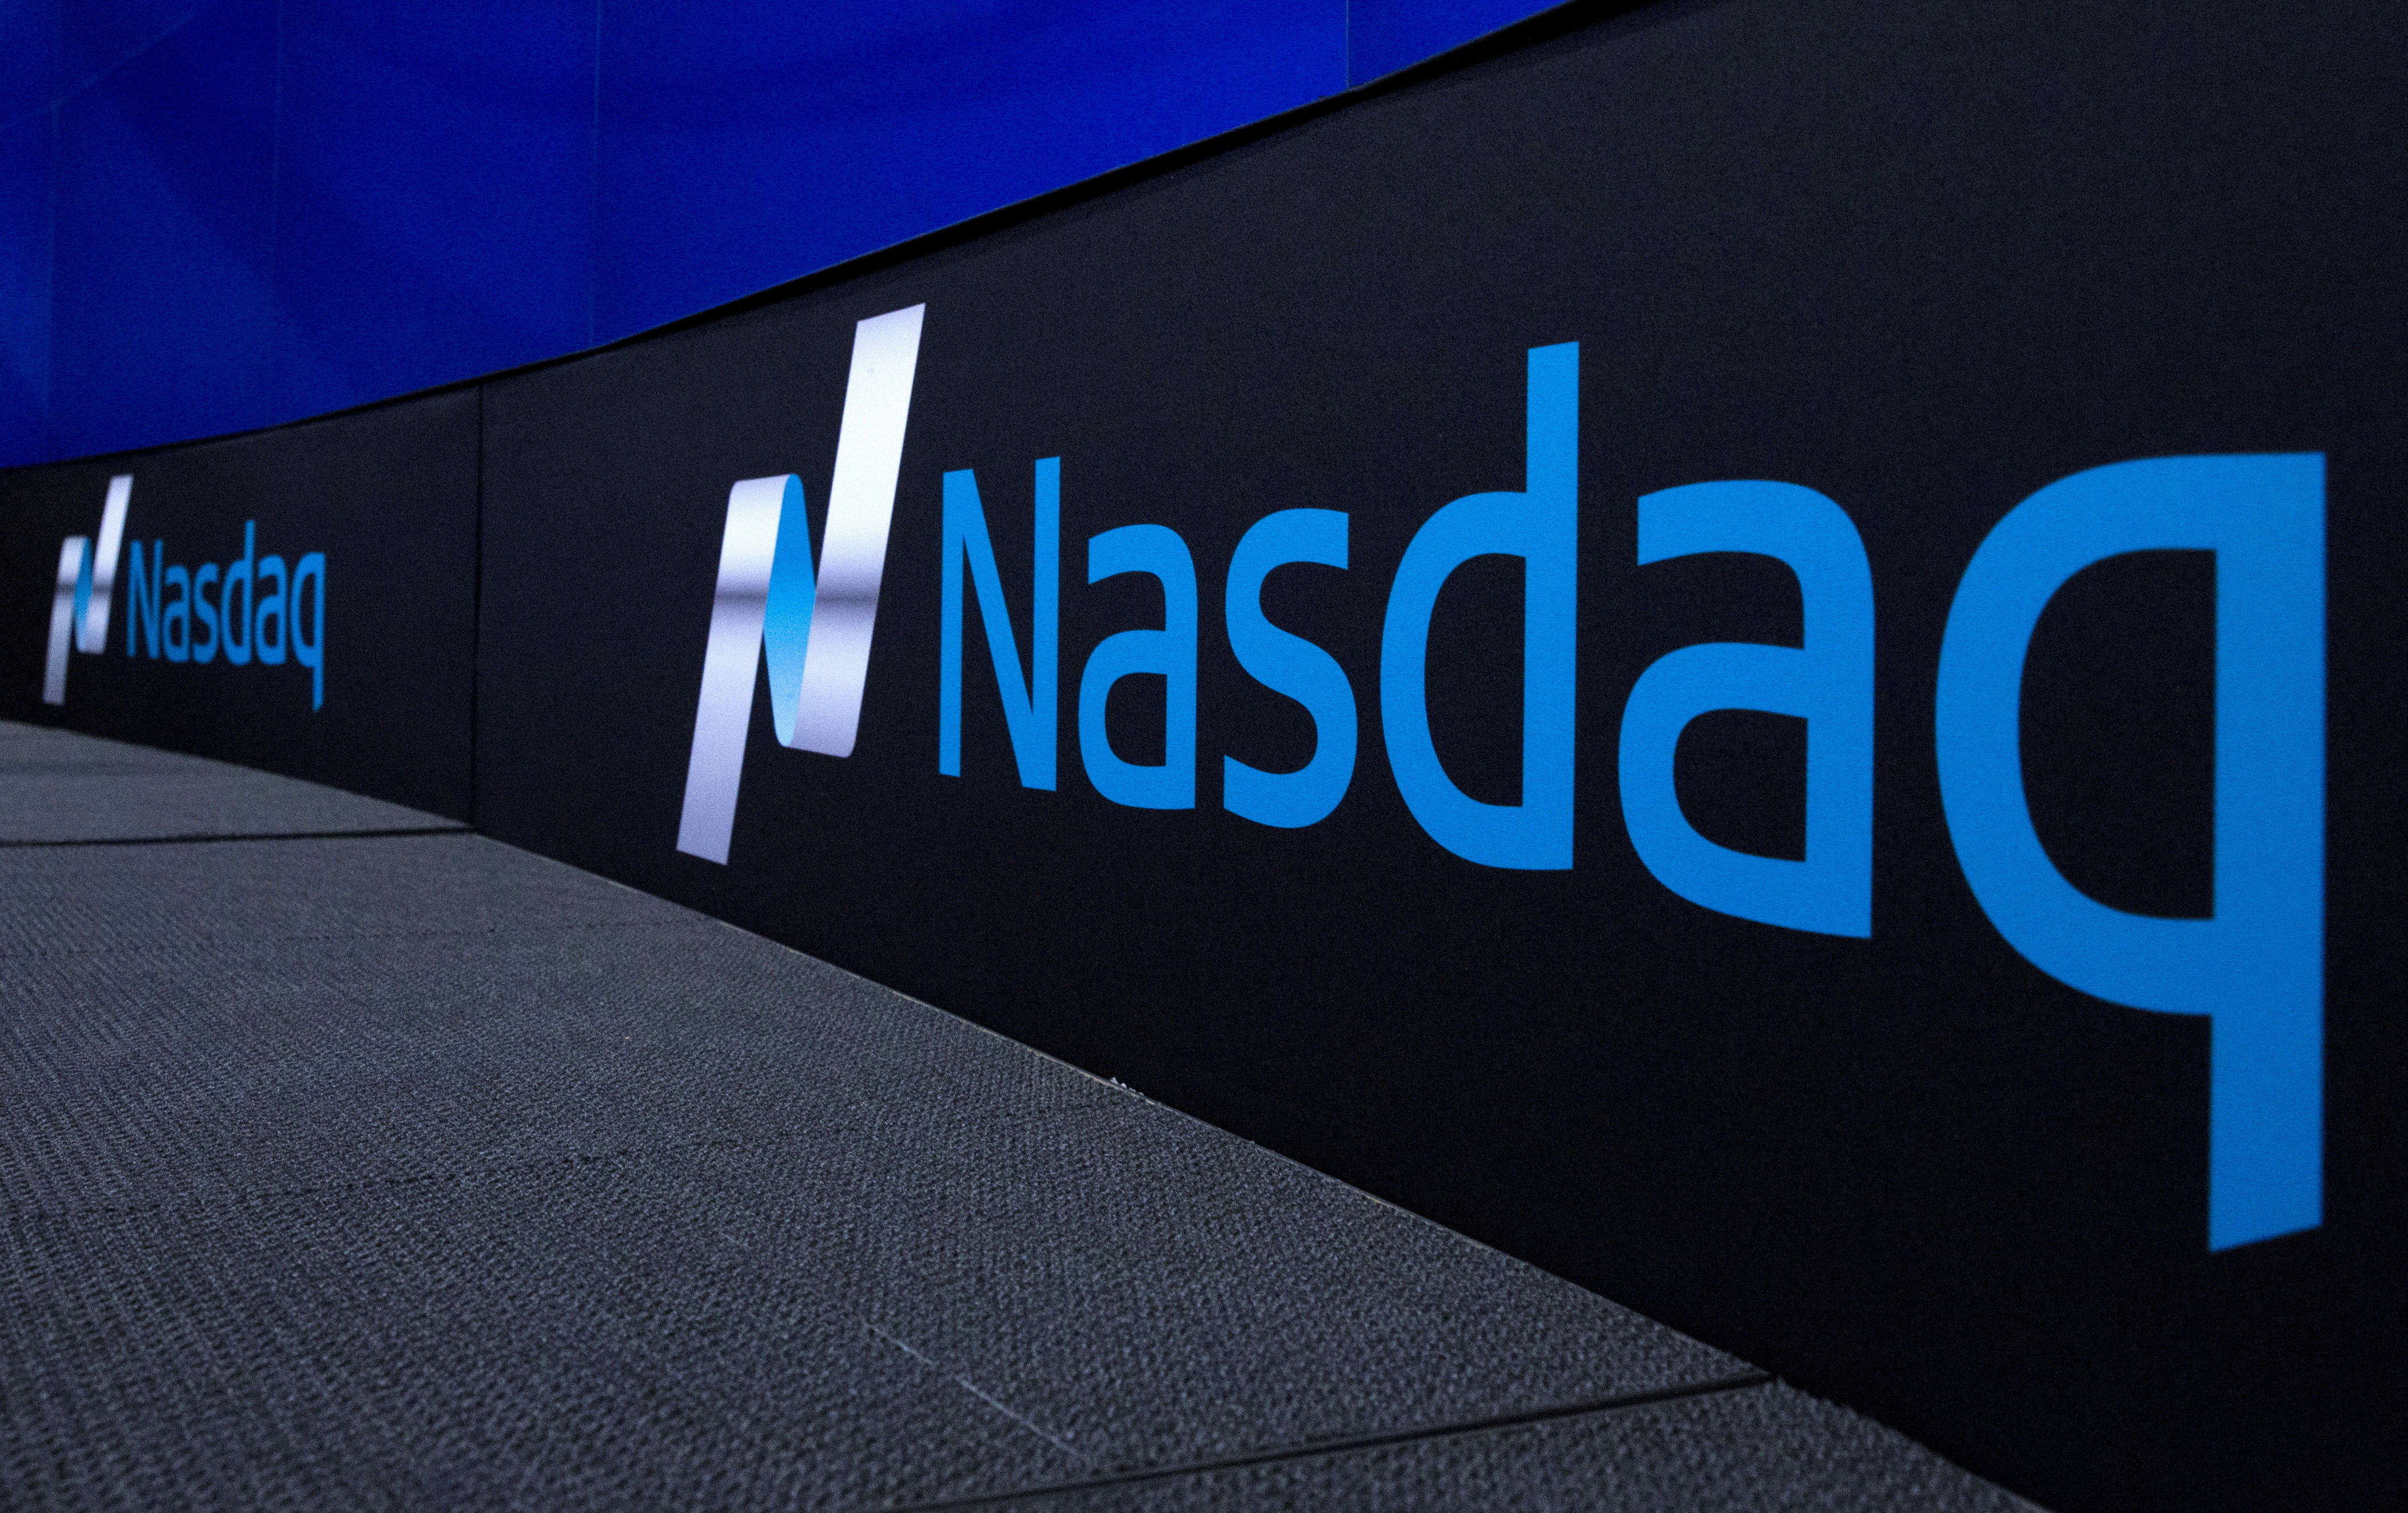 The Nasdaq logo is displayed at the Nasdaq Market site in New York September 2, 2015. REUTERS/Brendan McDermid/File Photo